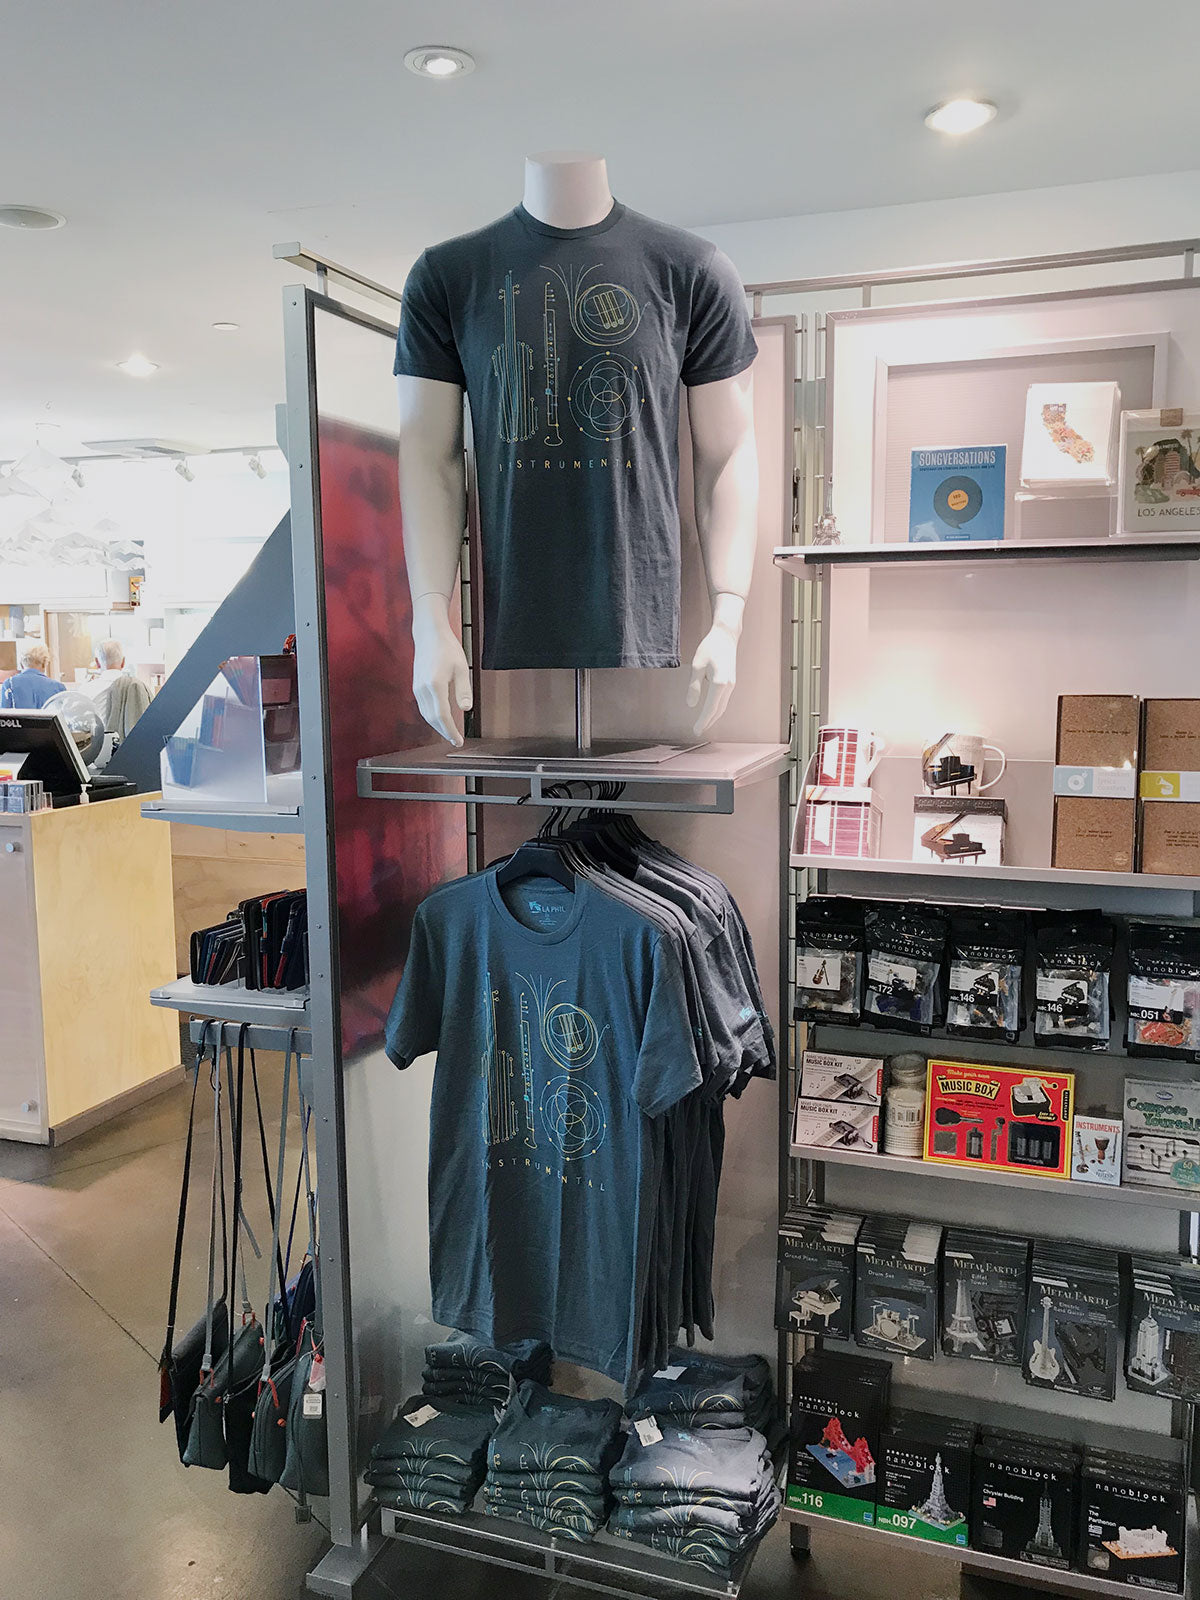 LA Phil t-shirts displayed in store